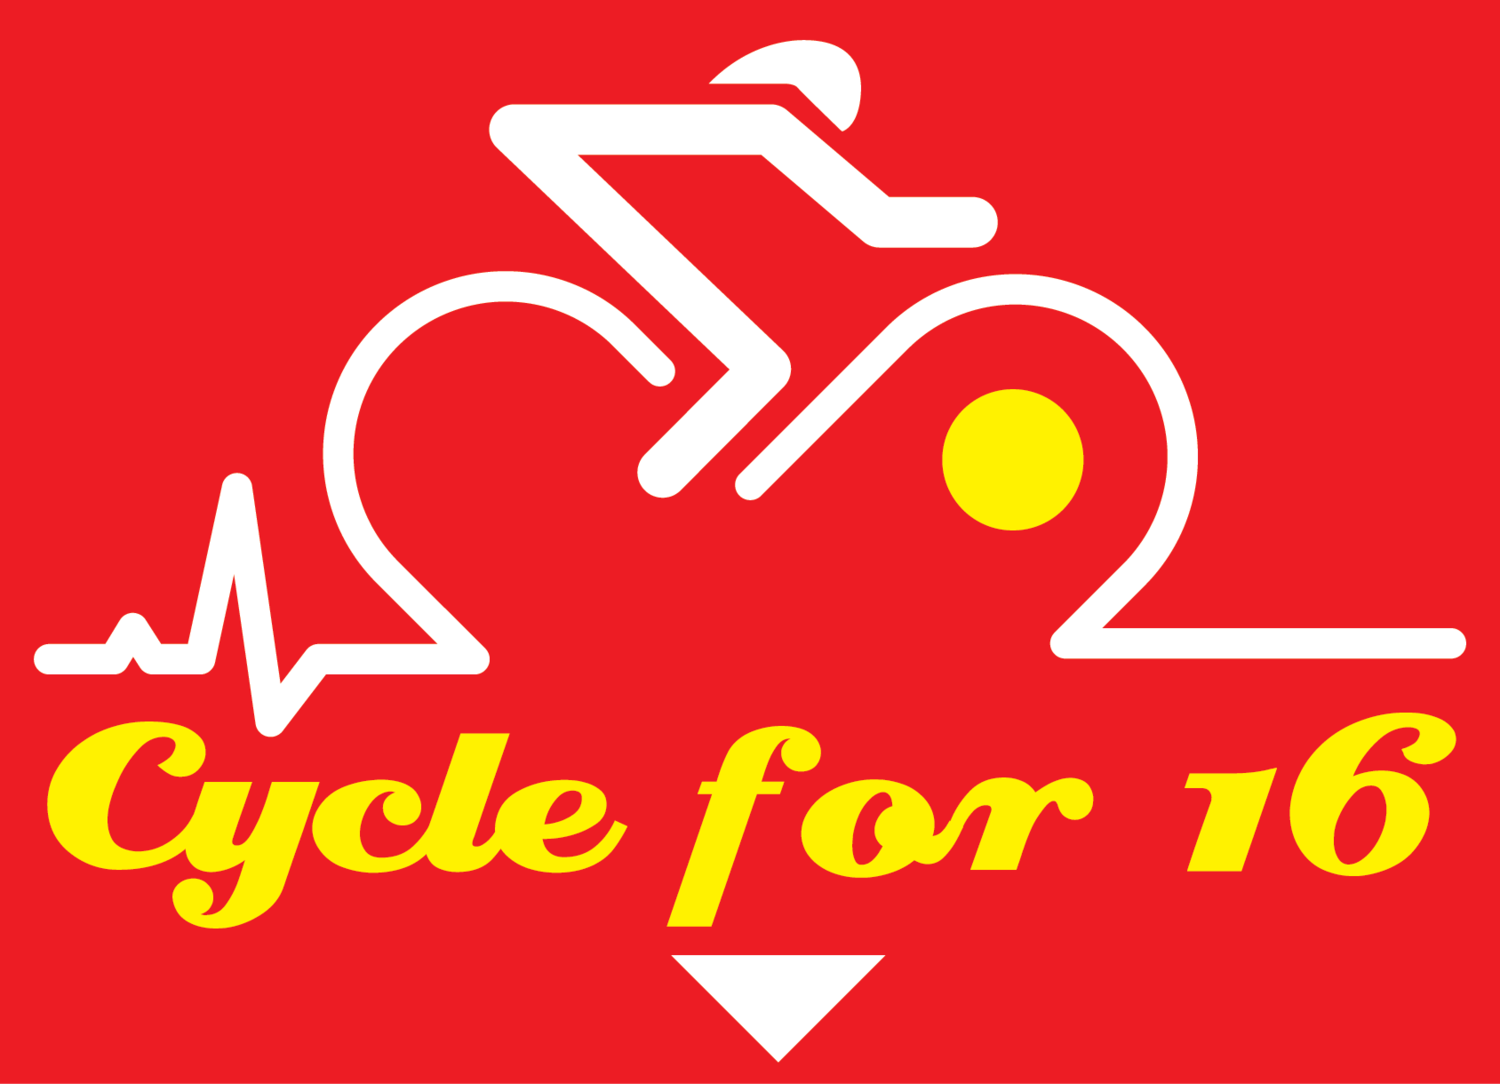 Cycle for 16